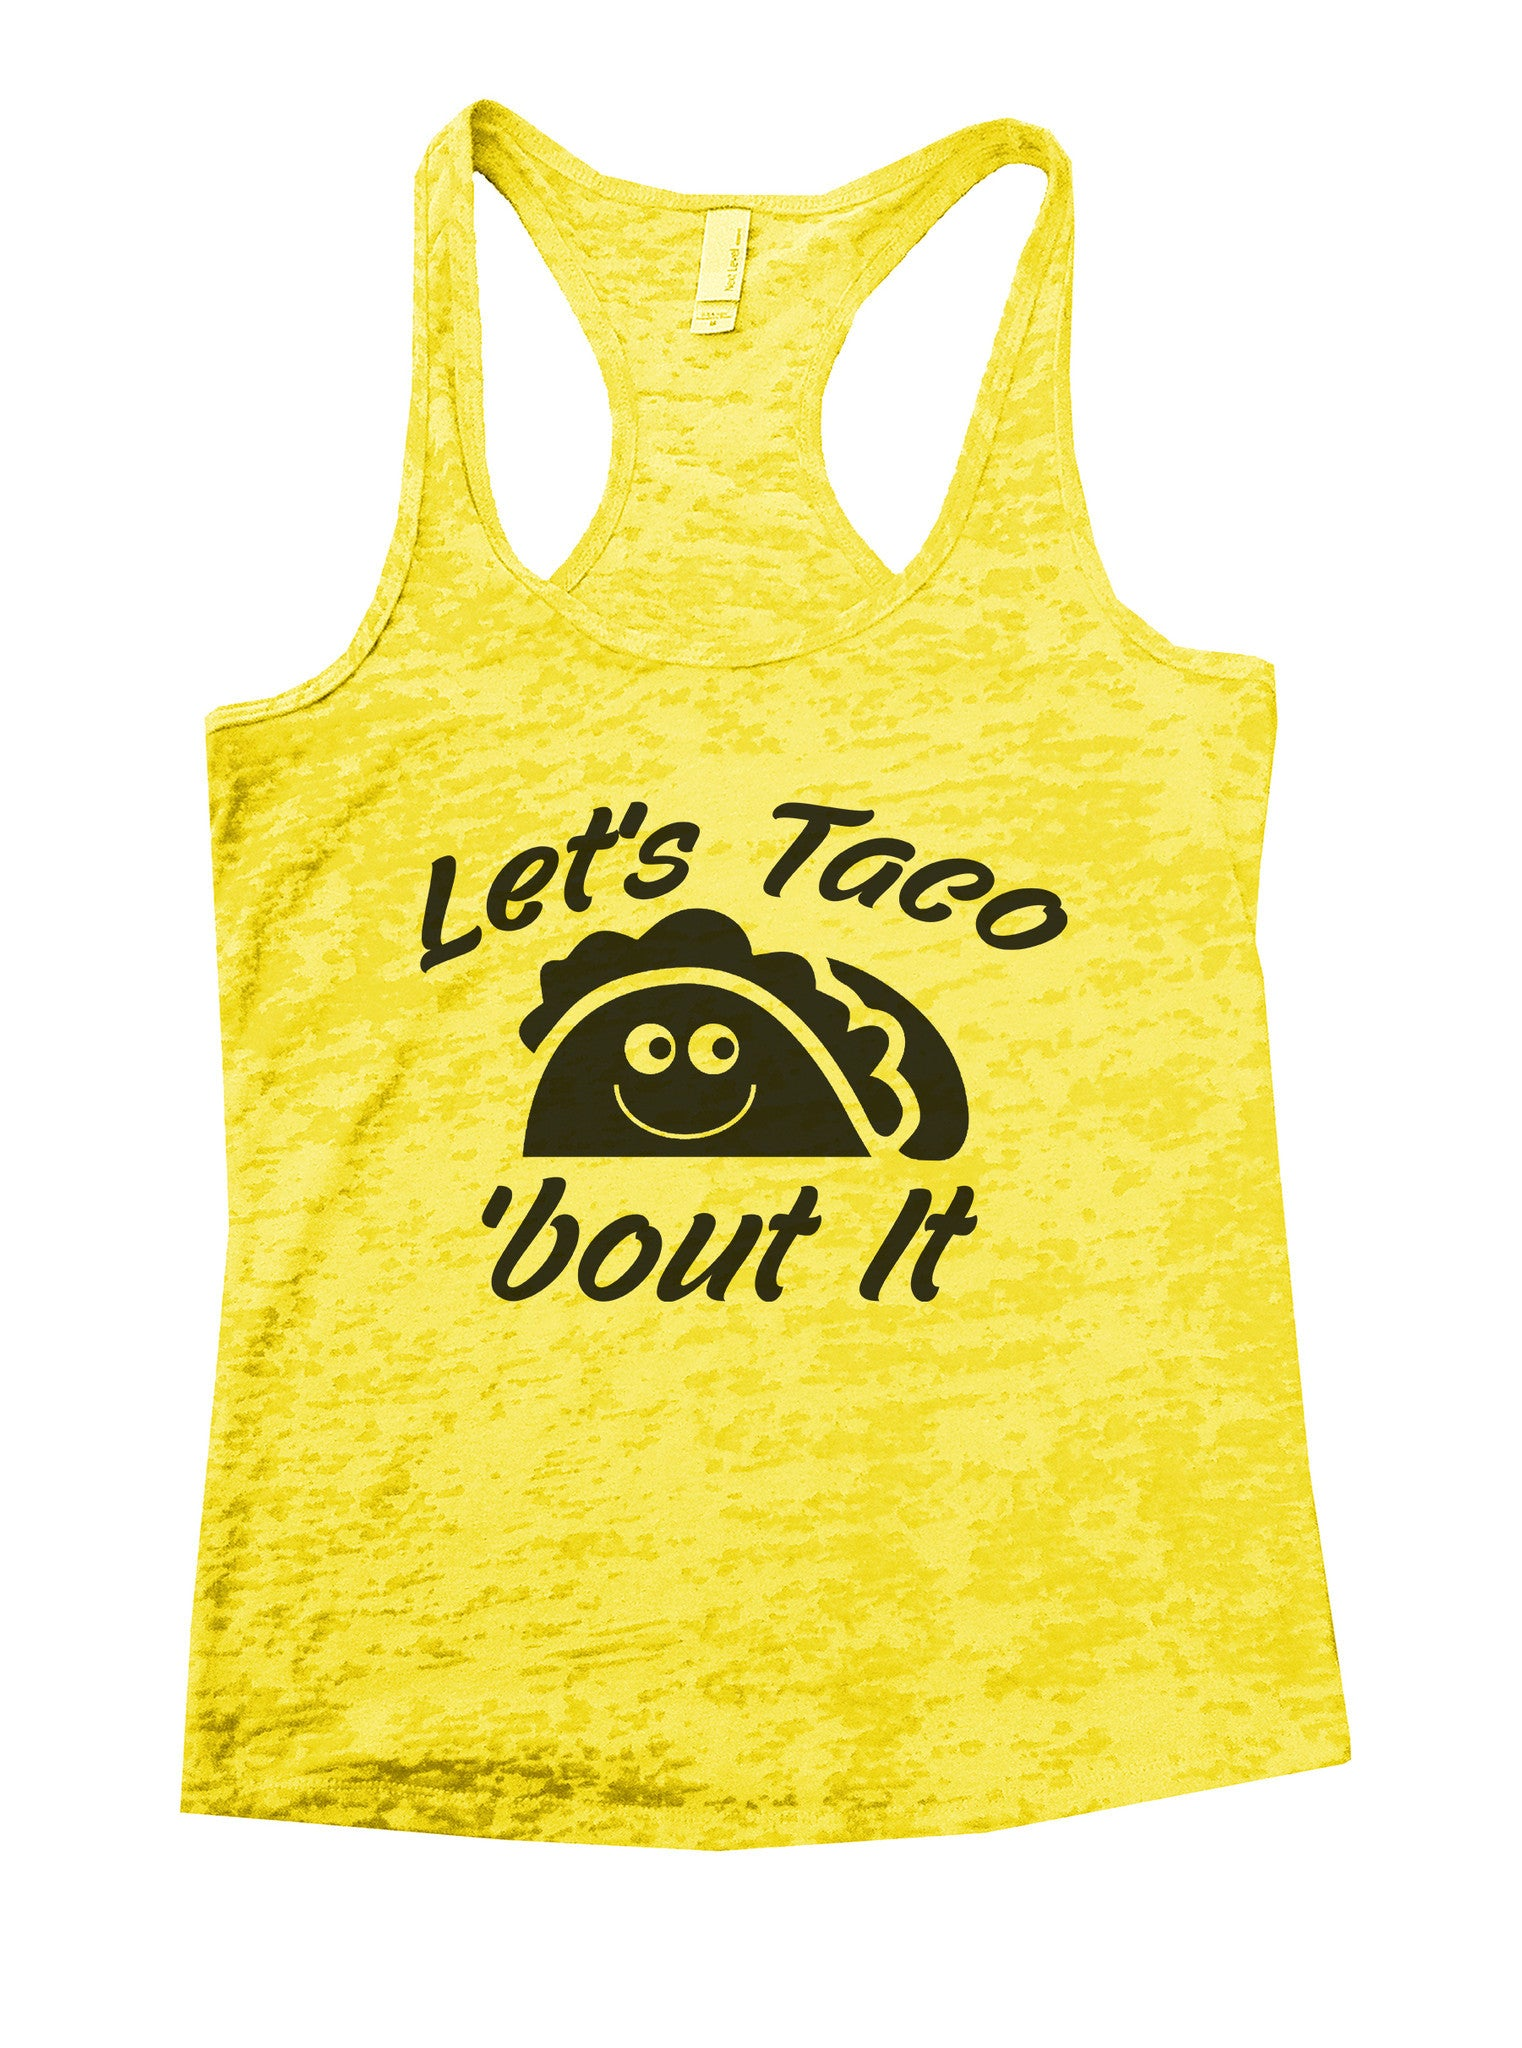 Let's Taco 'Bout It Burnout Tank Top By BurnoutTankTops.com - B860 - Funny Shirts Tank Tops Burnouts and Triblends  - 7